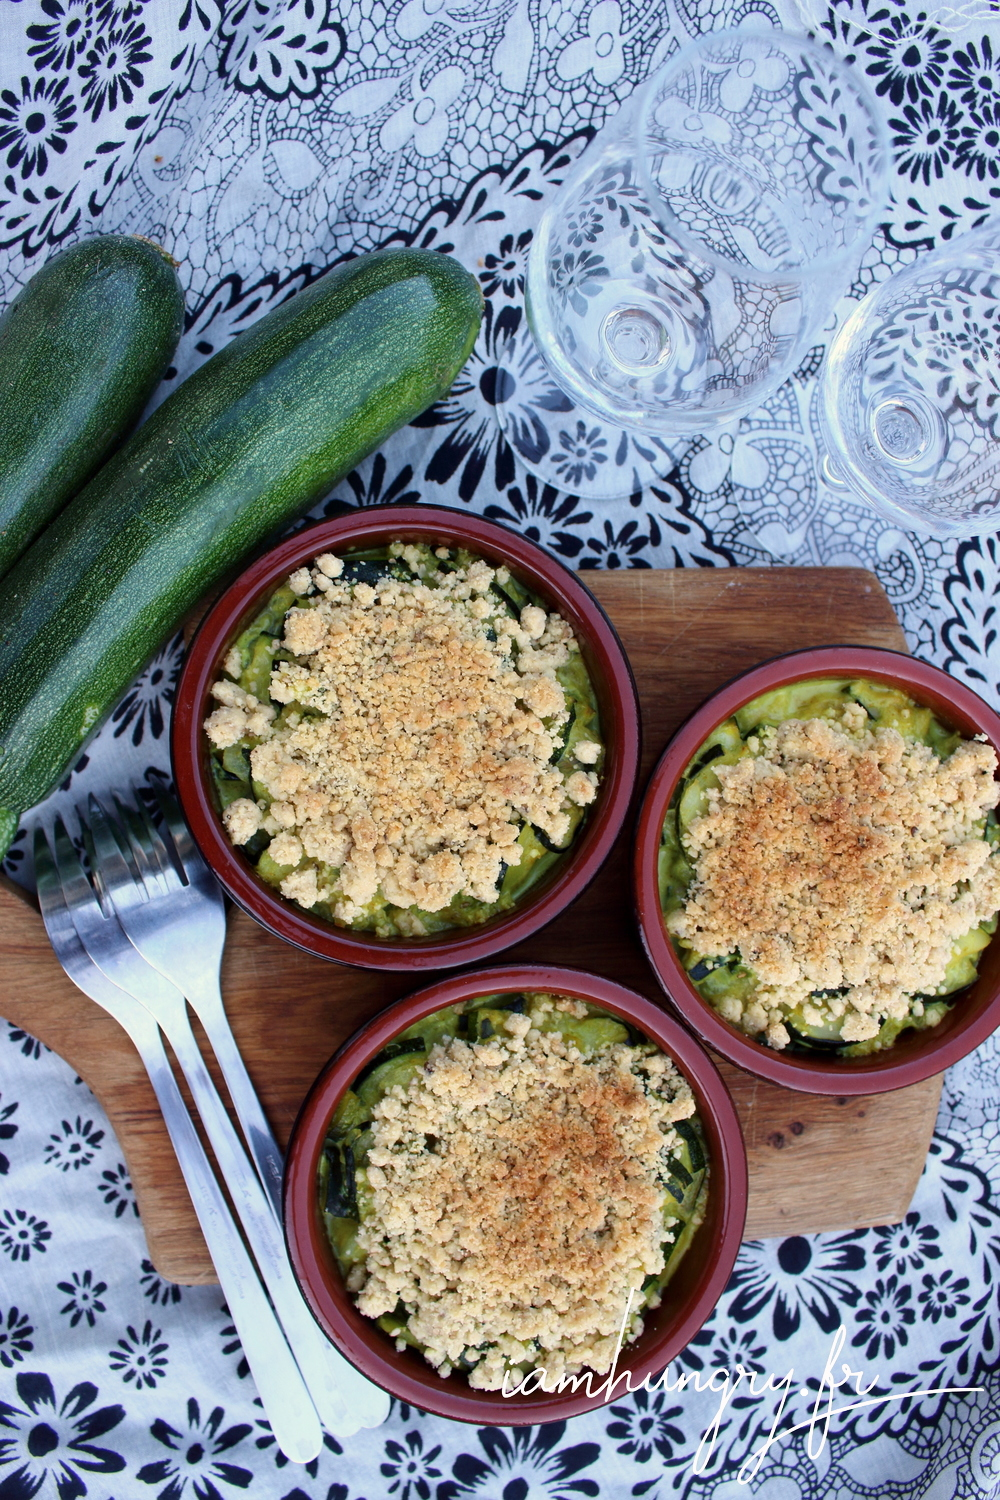 Crumble courgettes coco 1a